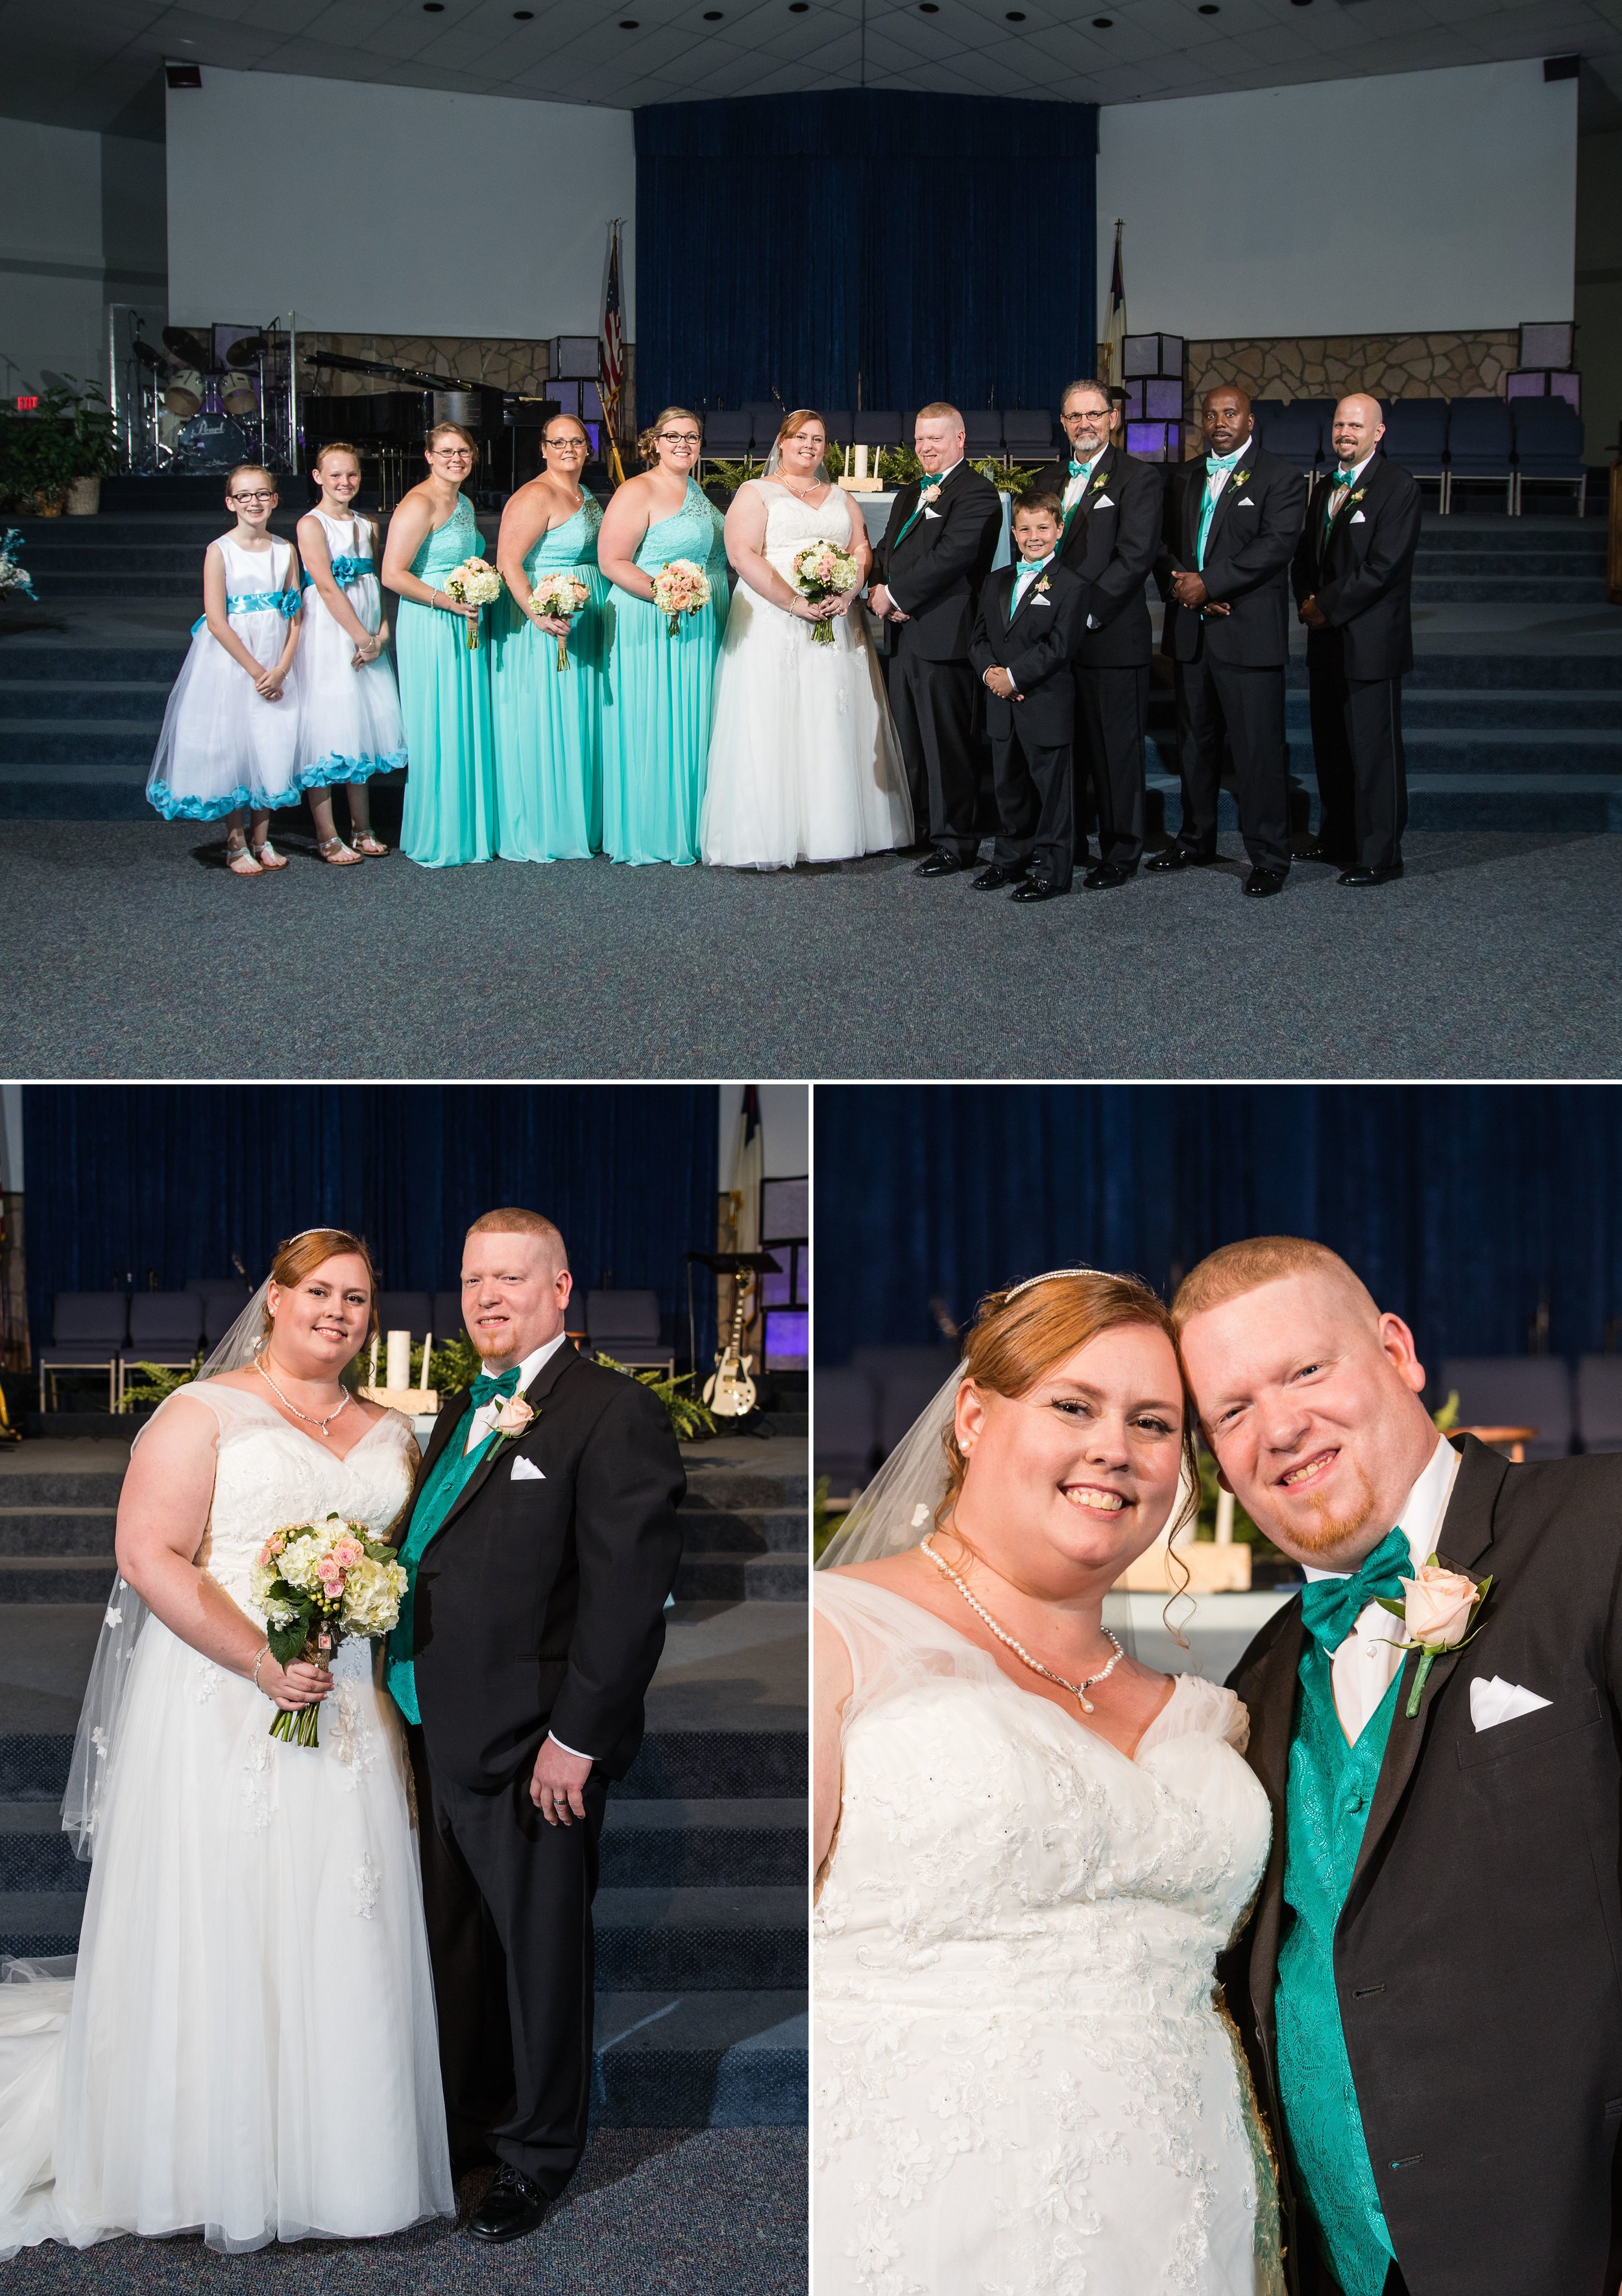 lighthouse-christian-ministries-wedding-ceremony-schiller-park-portraits-columbus-ohio-muschlitz-photography-007.JPG